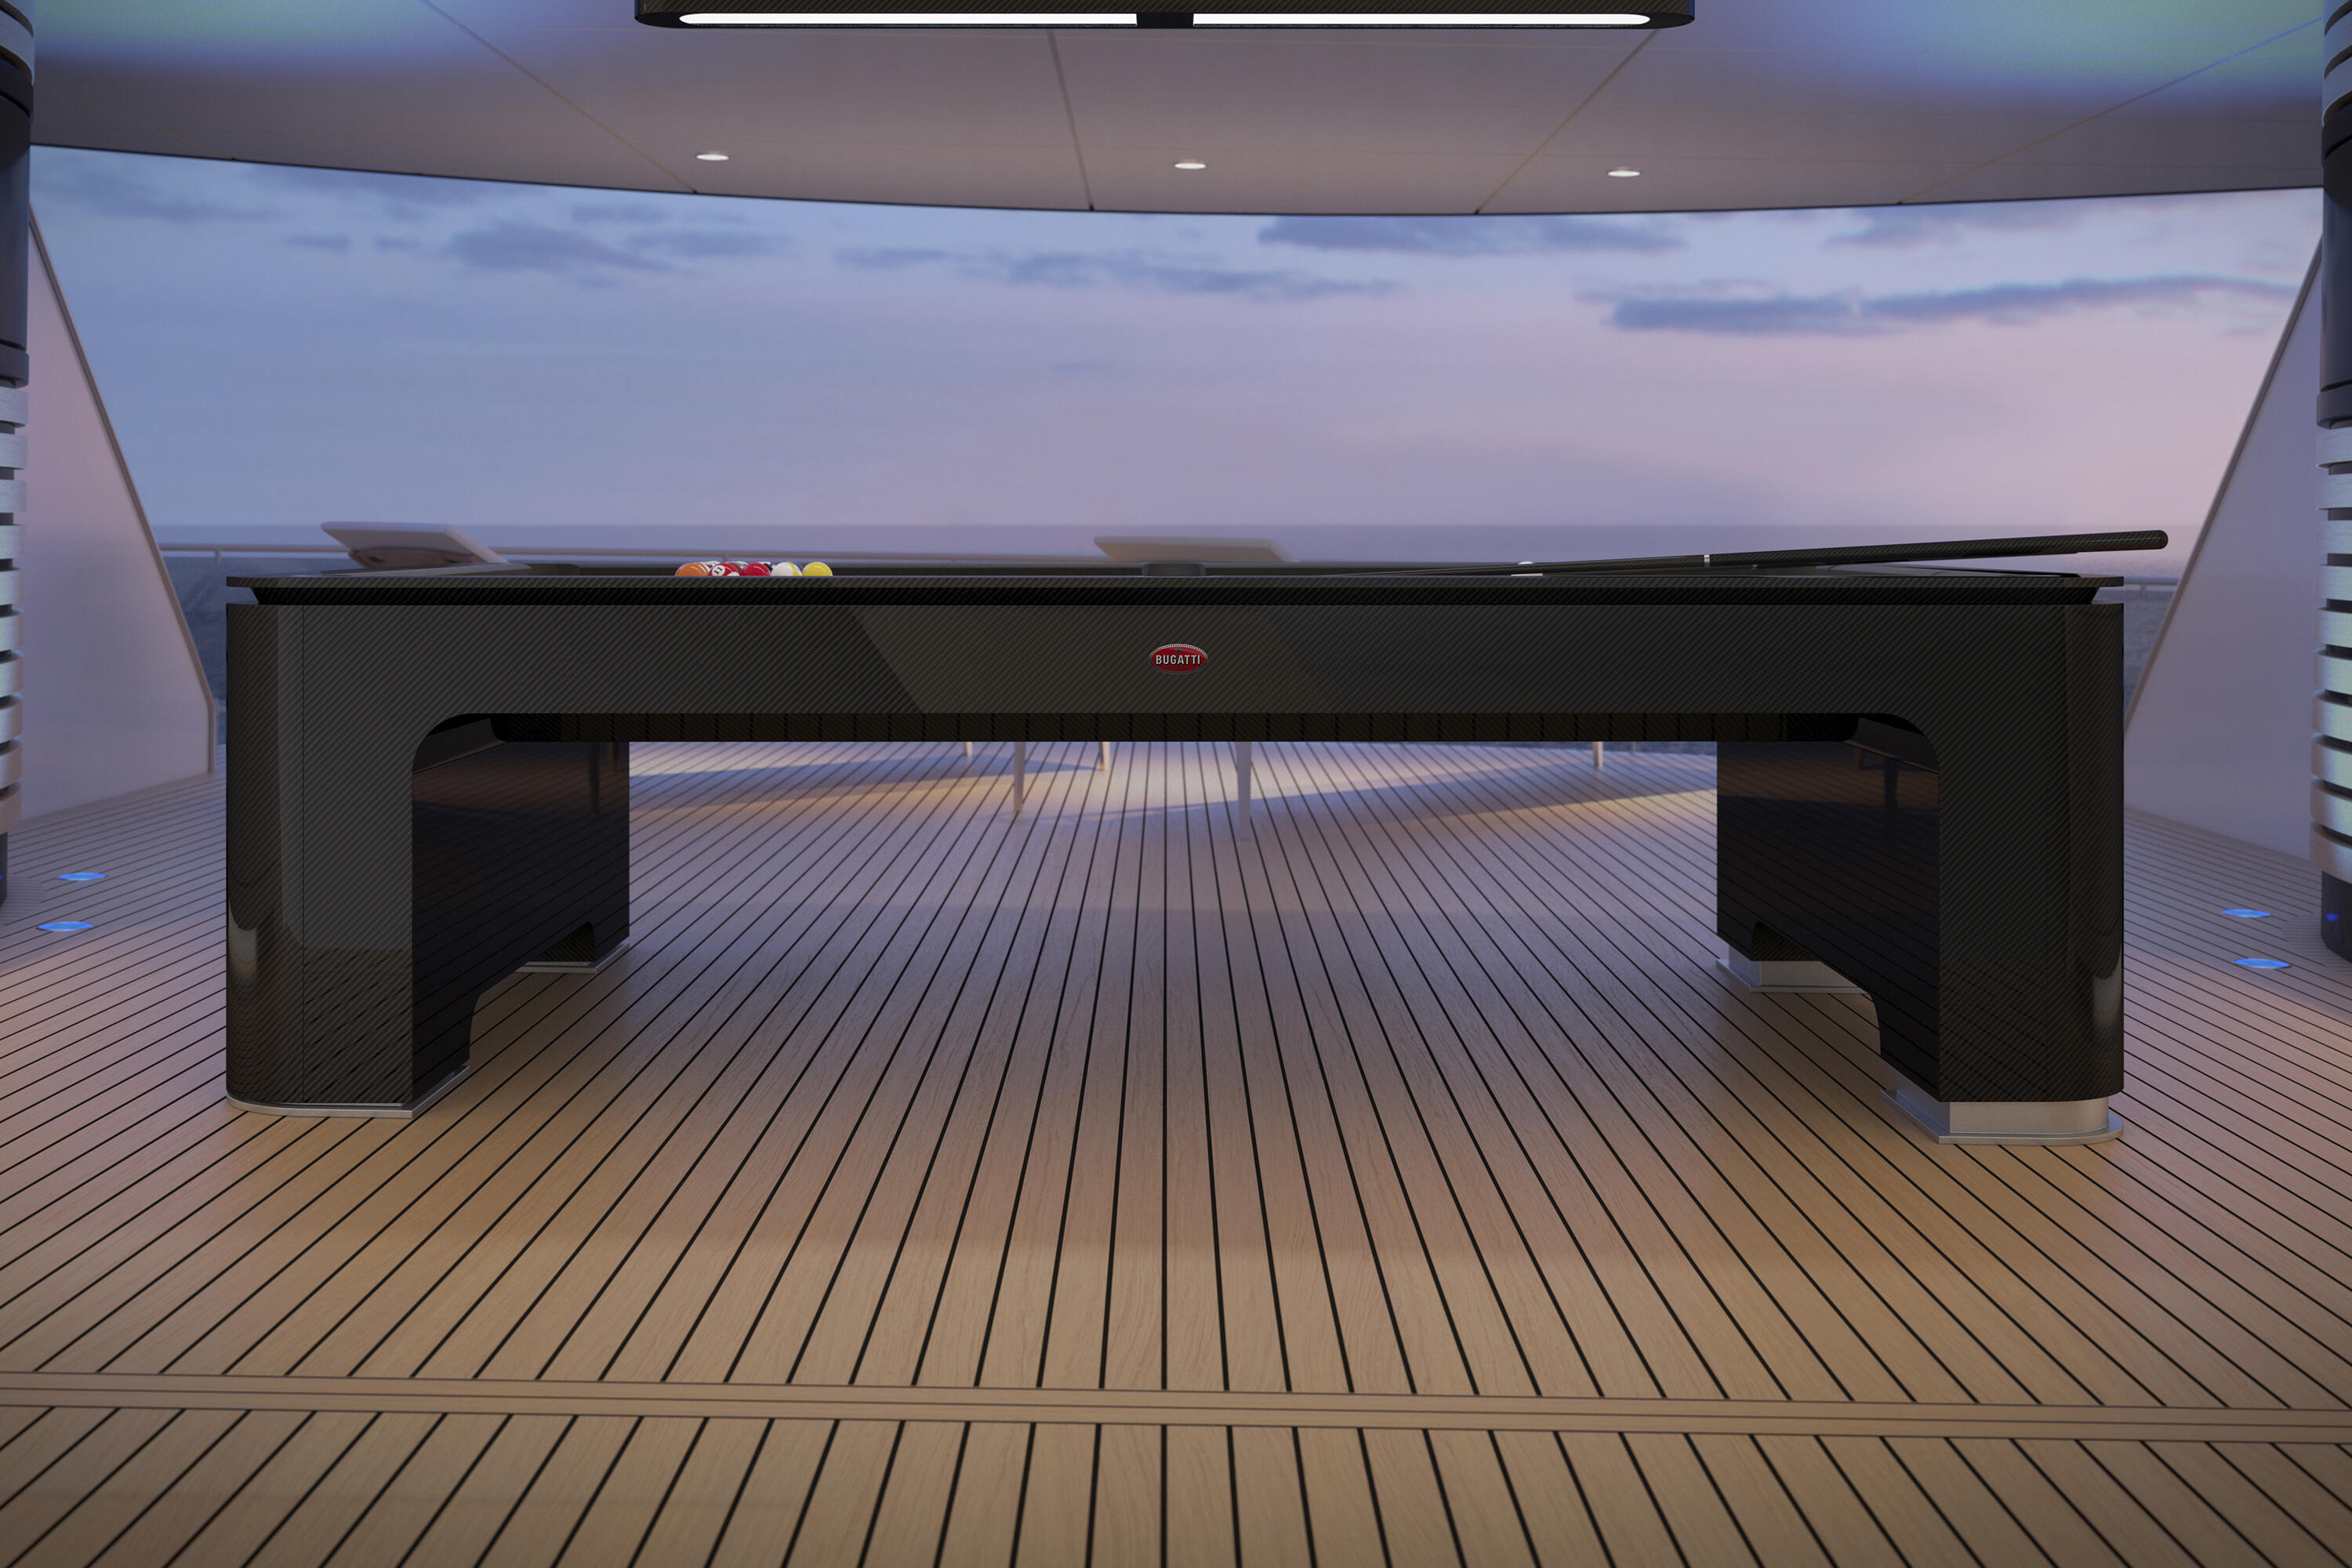 bugatti-carbon-fiber-pool-table-1